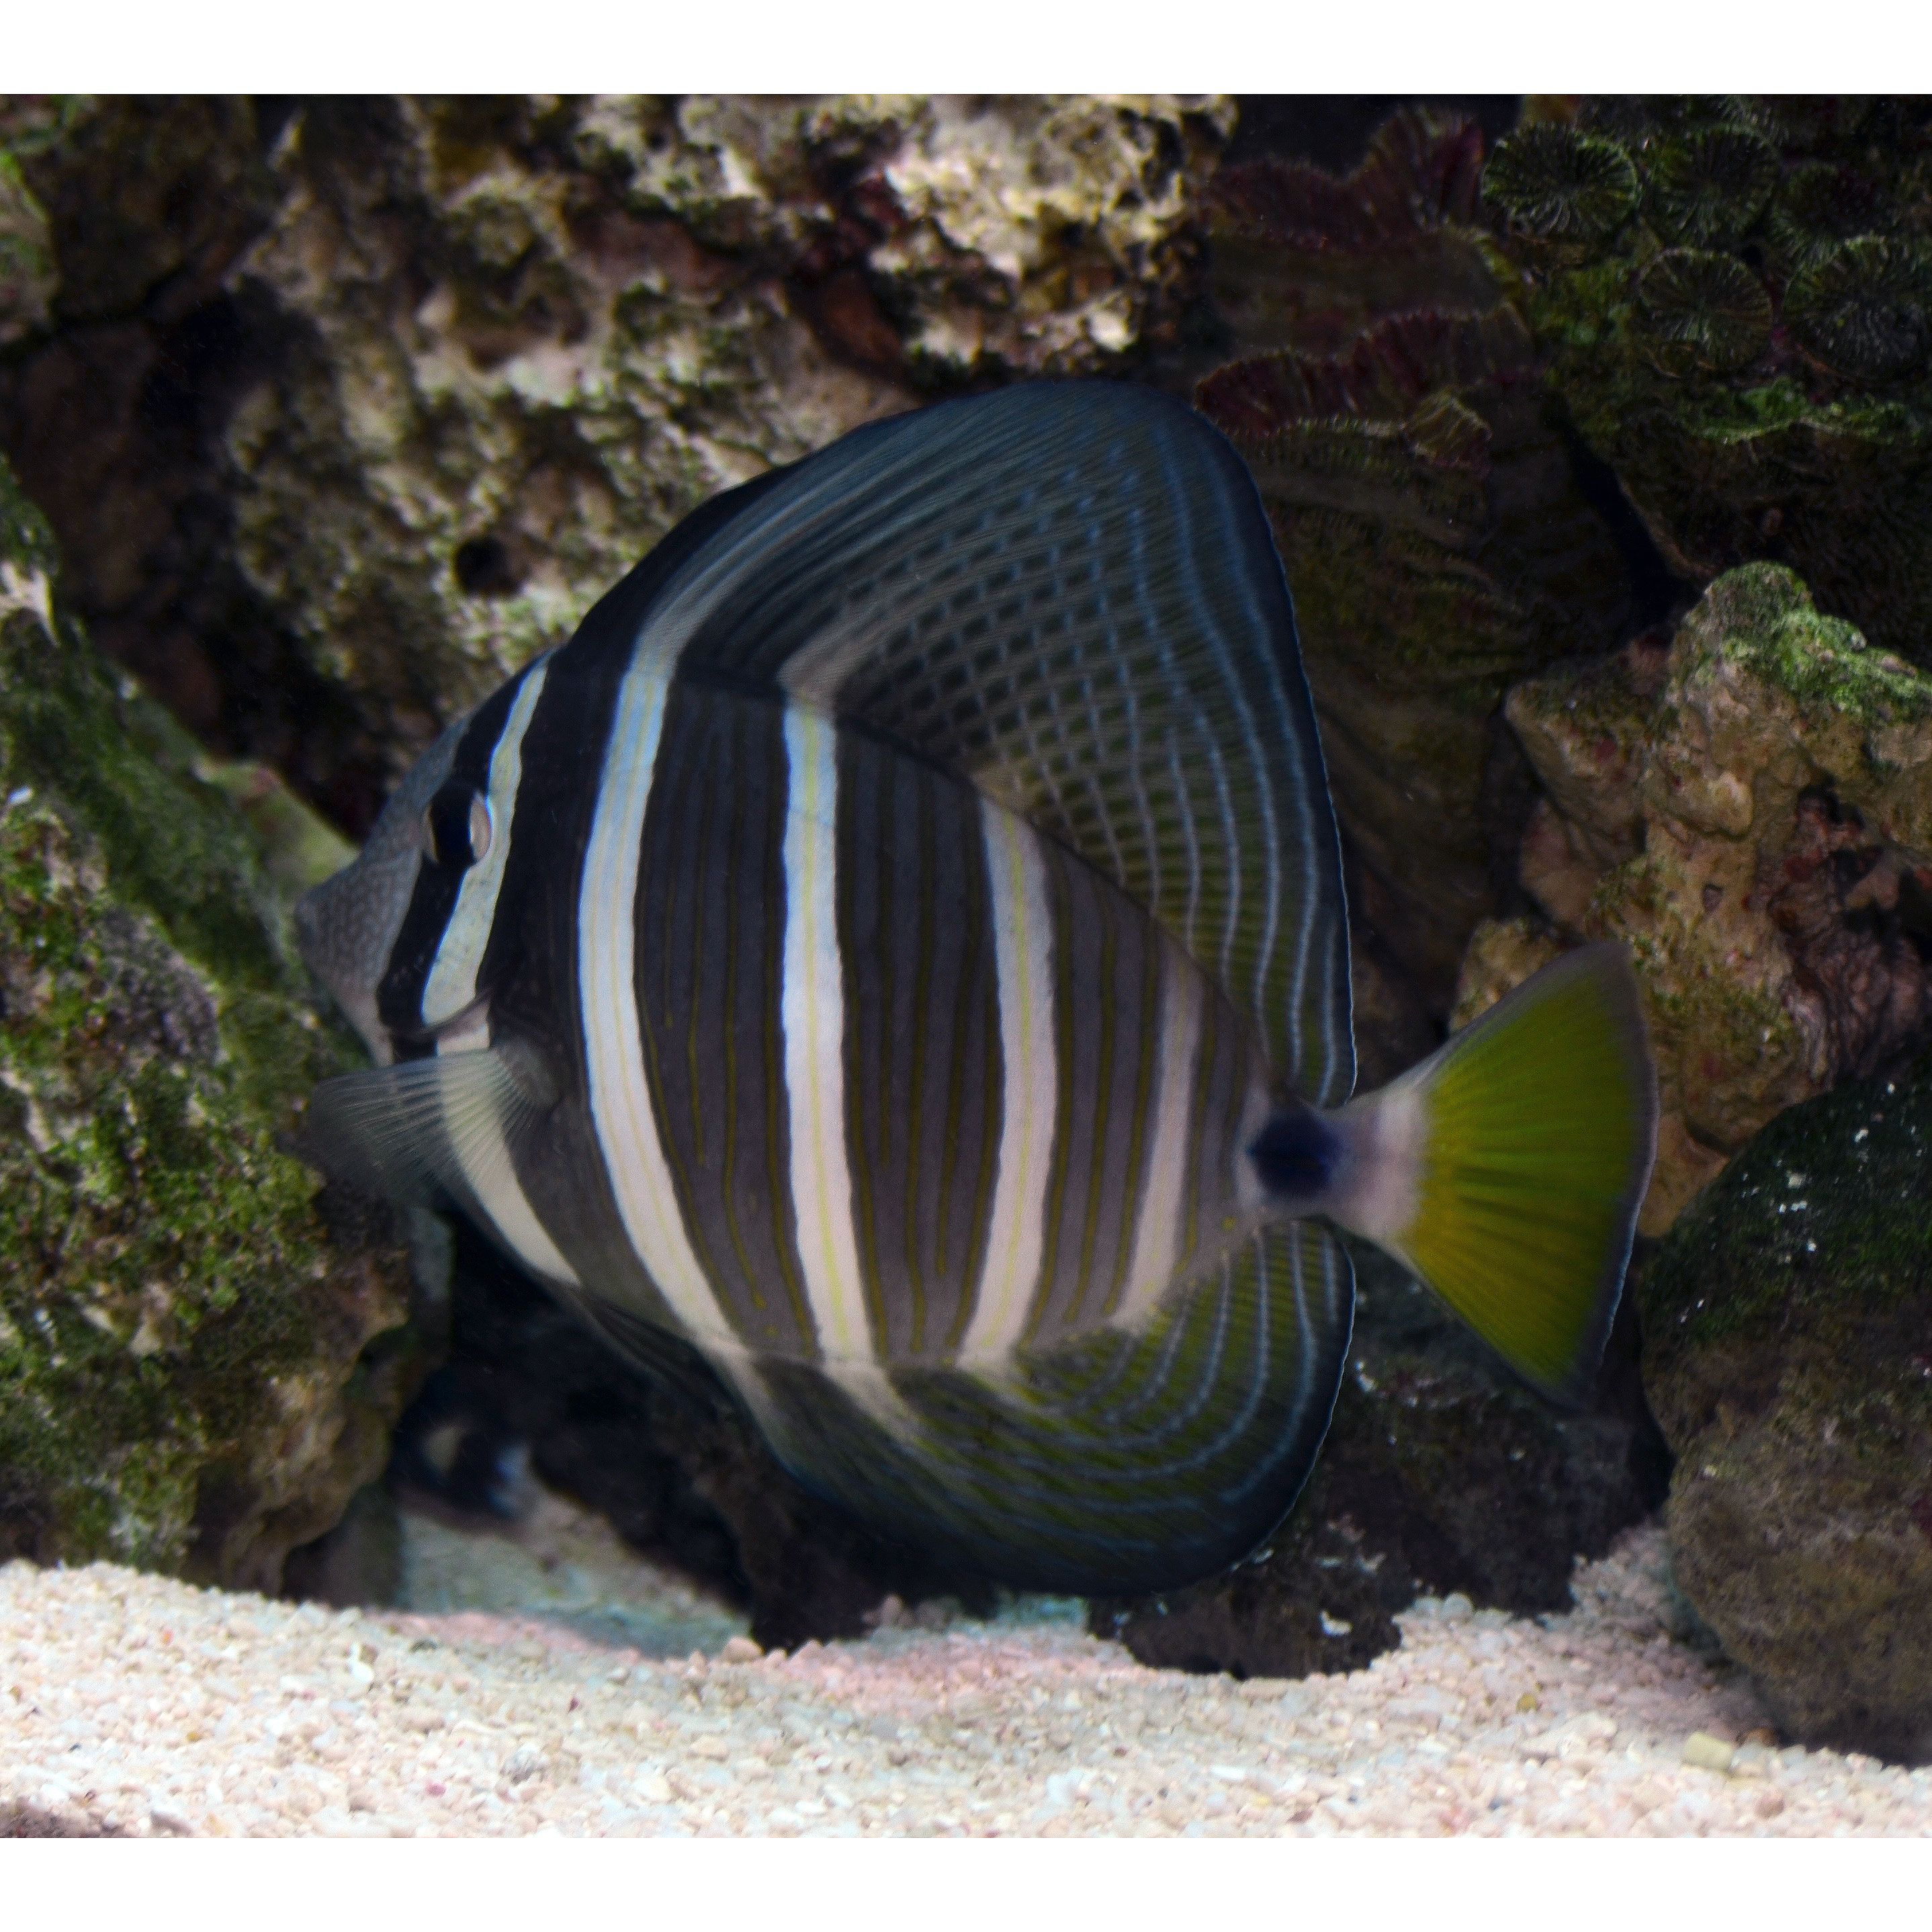 Sailfin Tang From My Aquarium This Beautiful Creature Is One Of My